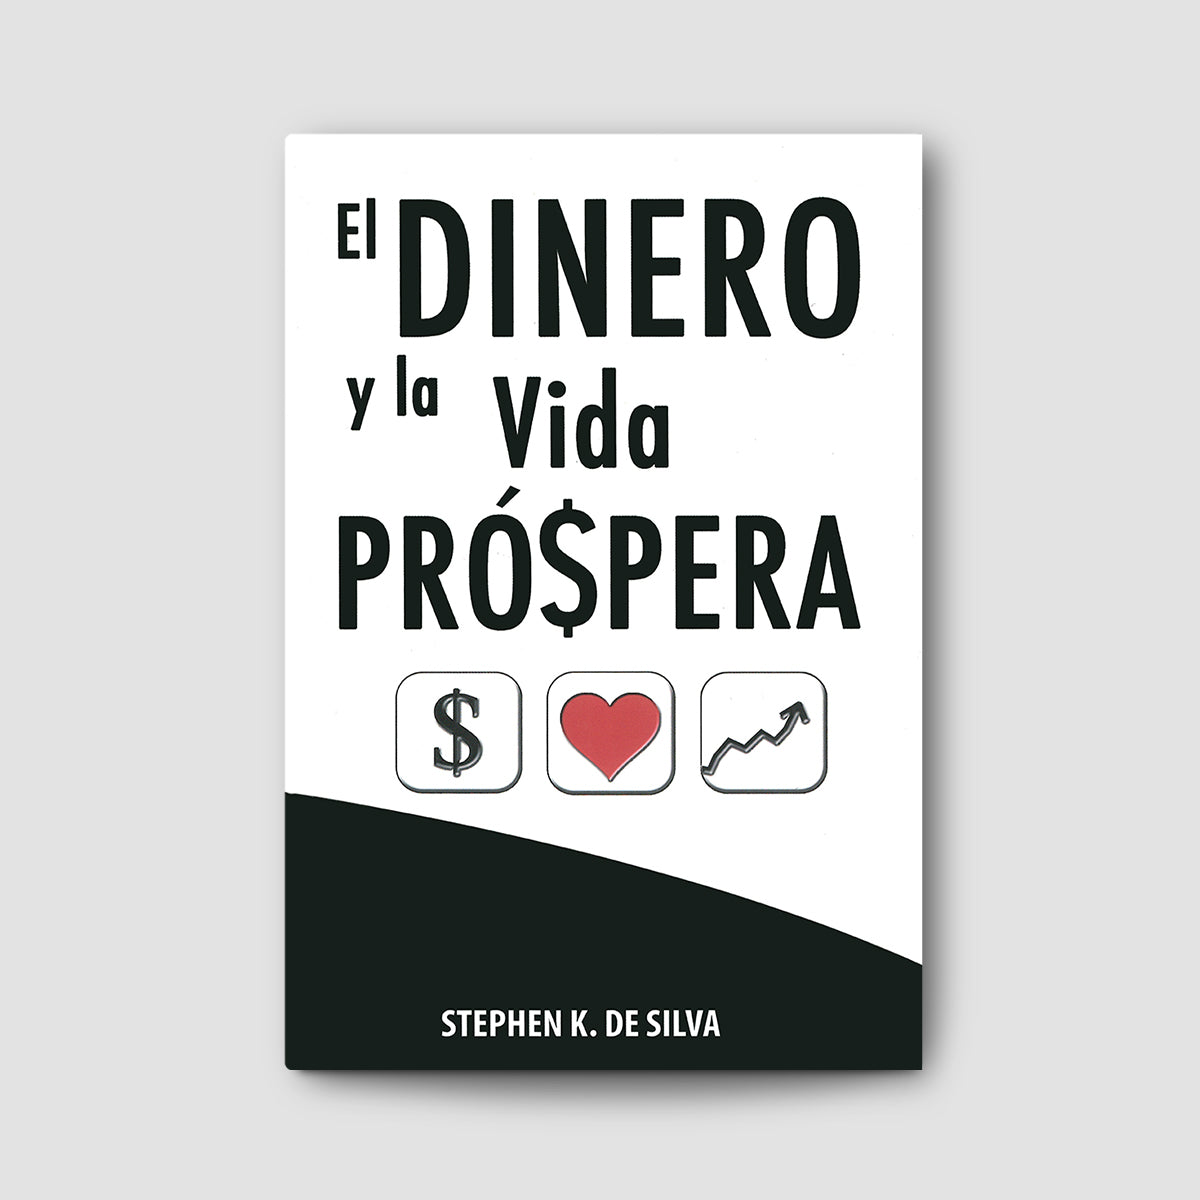 El Dinero y la Vida Prospera (Money and the Prosperous Soul - Spanish)